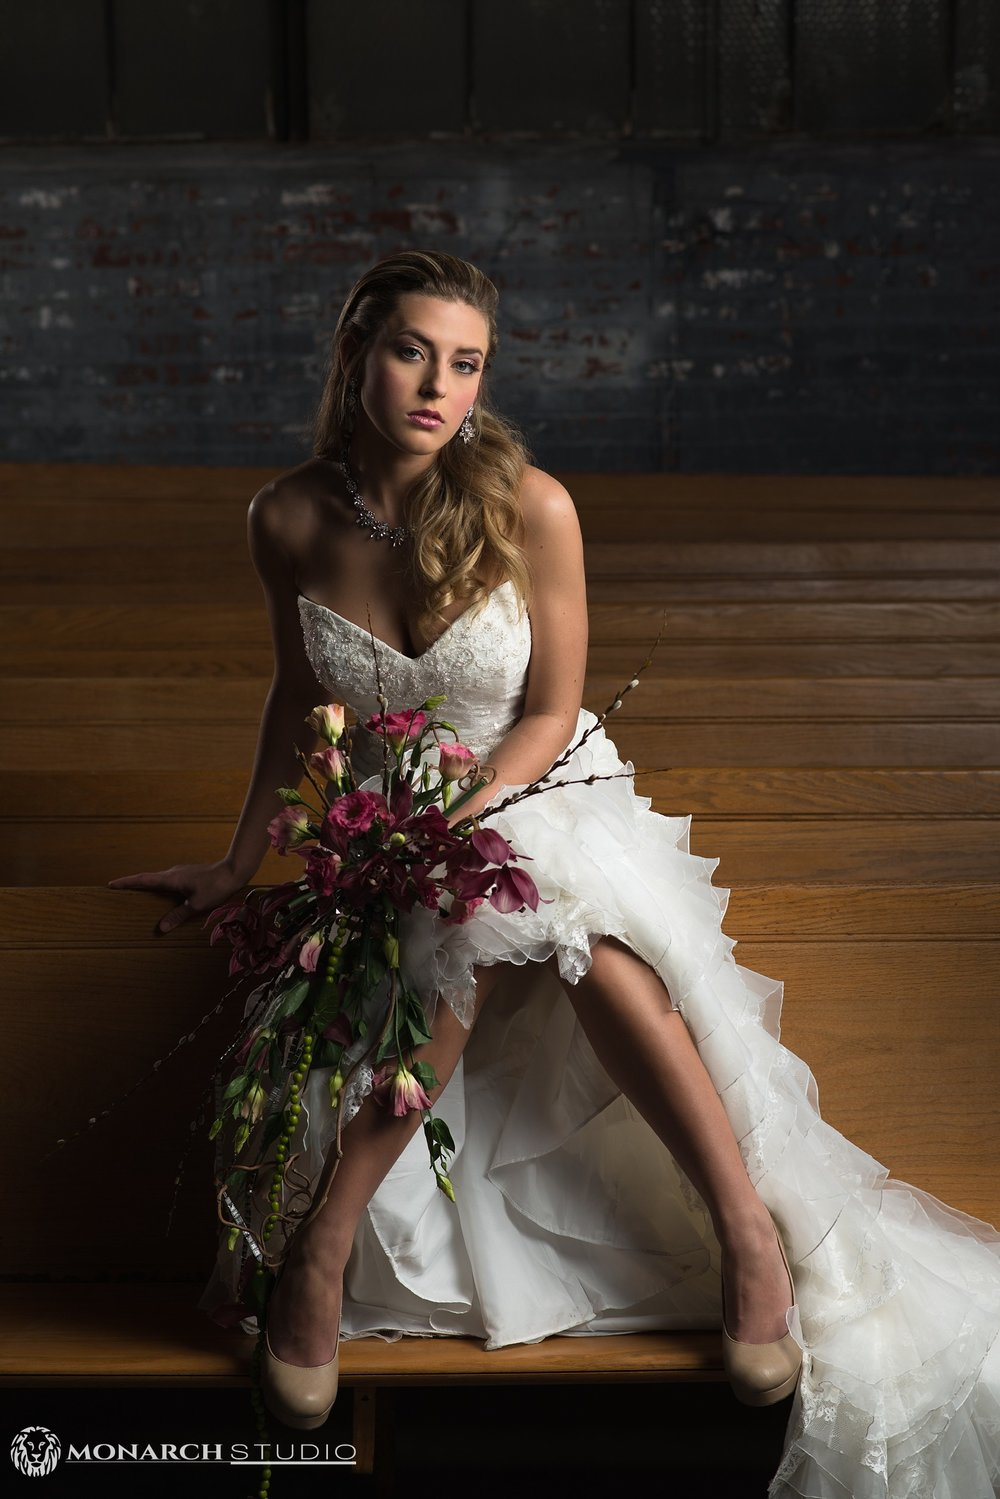 Monarch Studio's photographer D. Walters captures style wedding for bridal magazine.